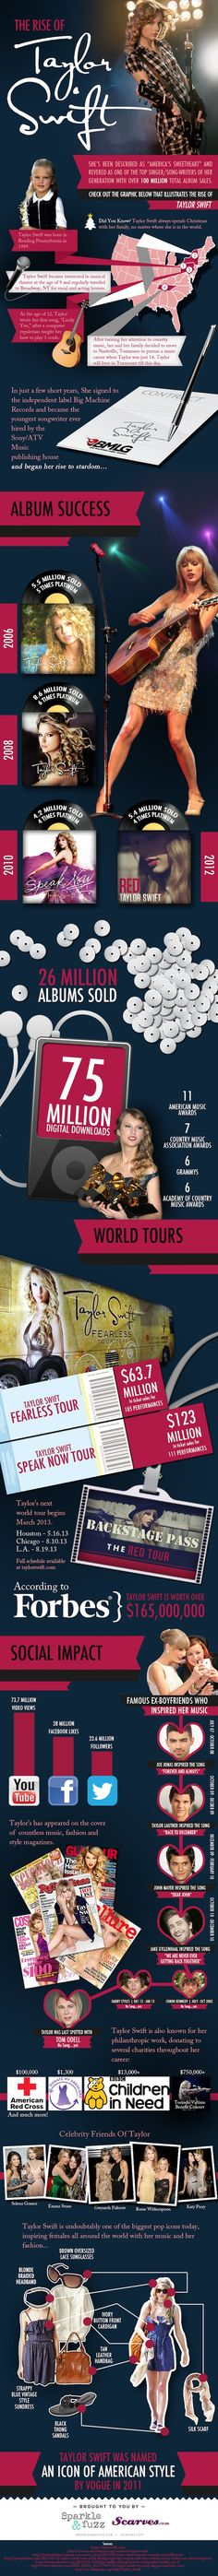 Sparkle and Full The Rise of Taylor Swfit Infographic